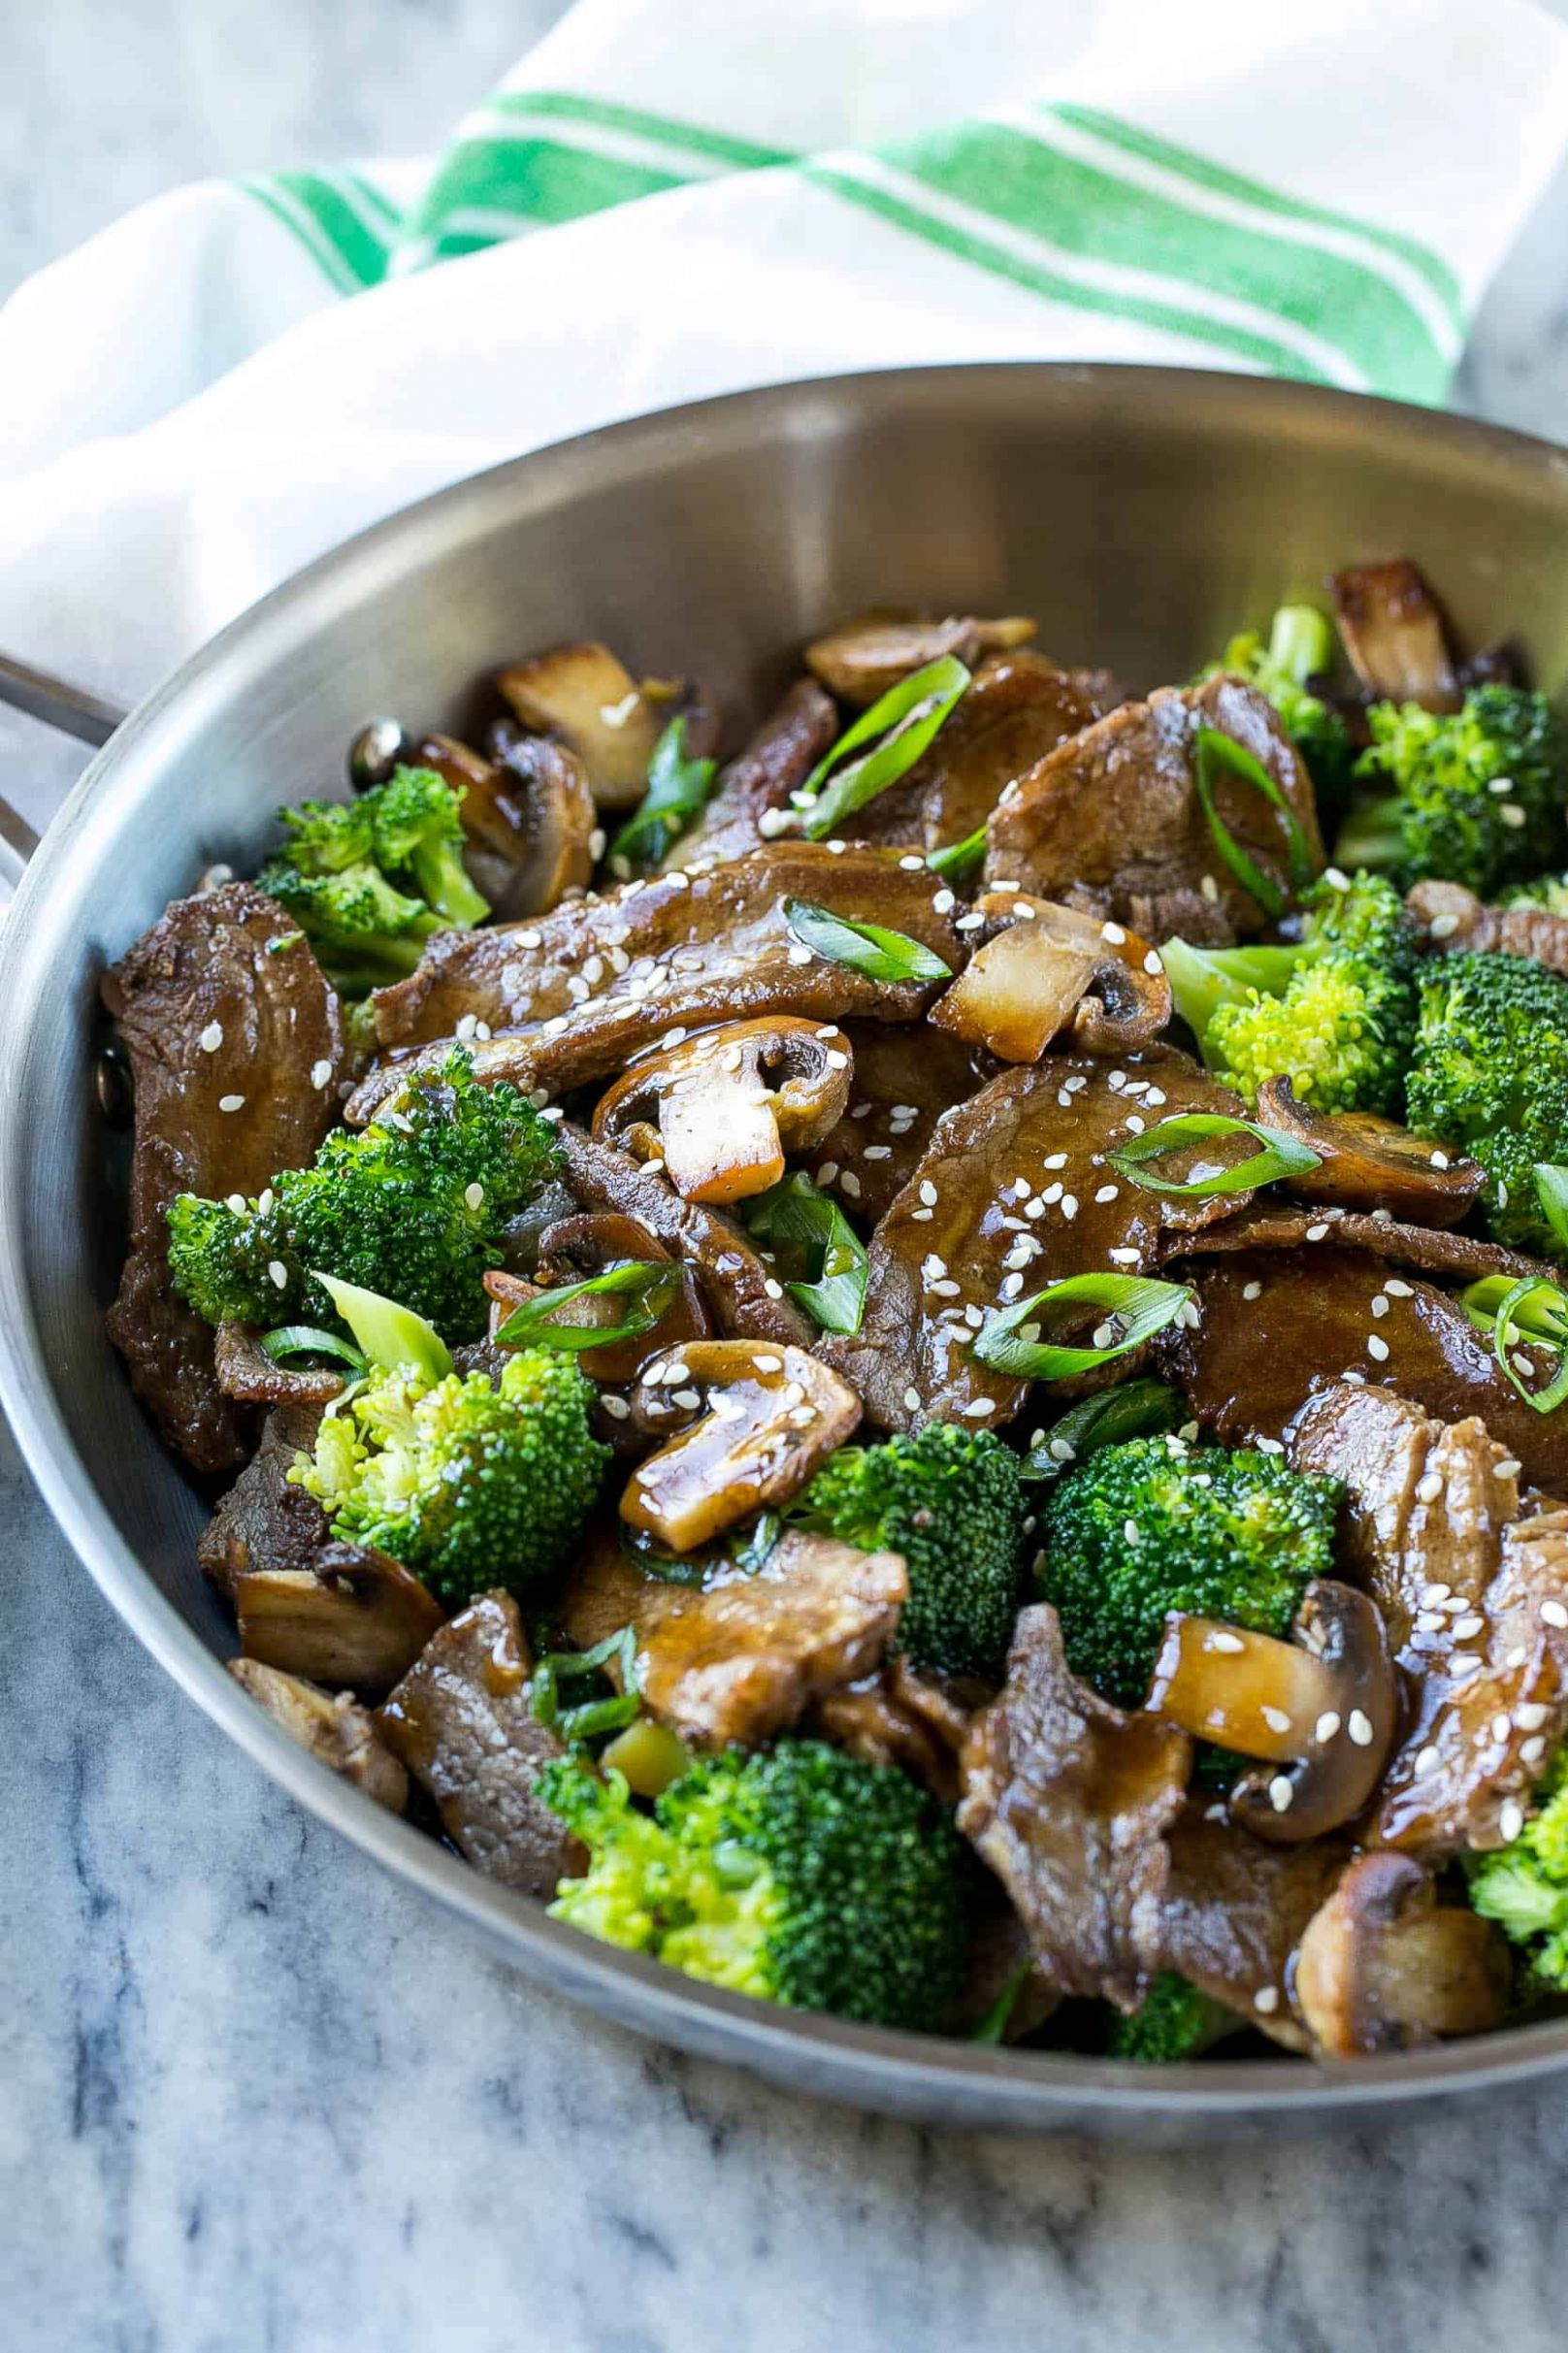 The BEST Beef and Broccoli Recipe | Healthy Fitness Meals - Beef Recipes Healthy Easy